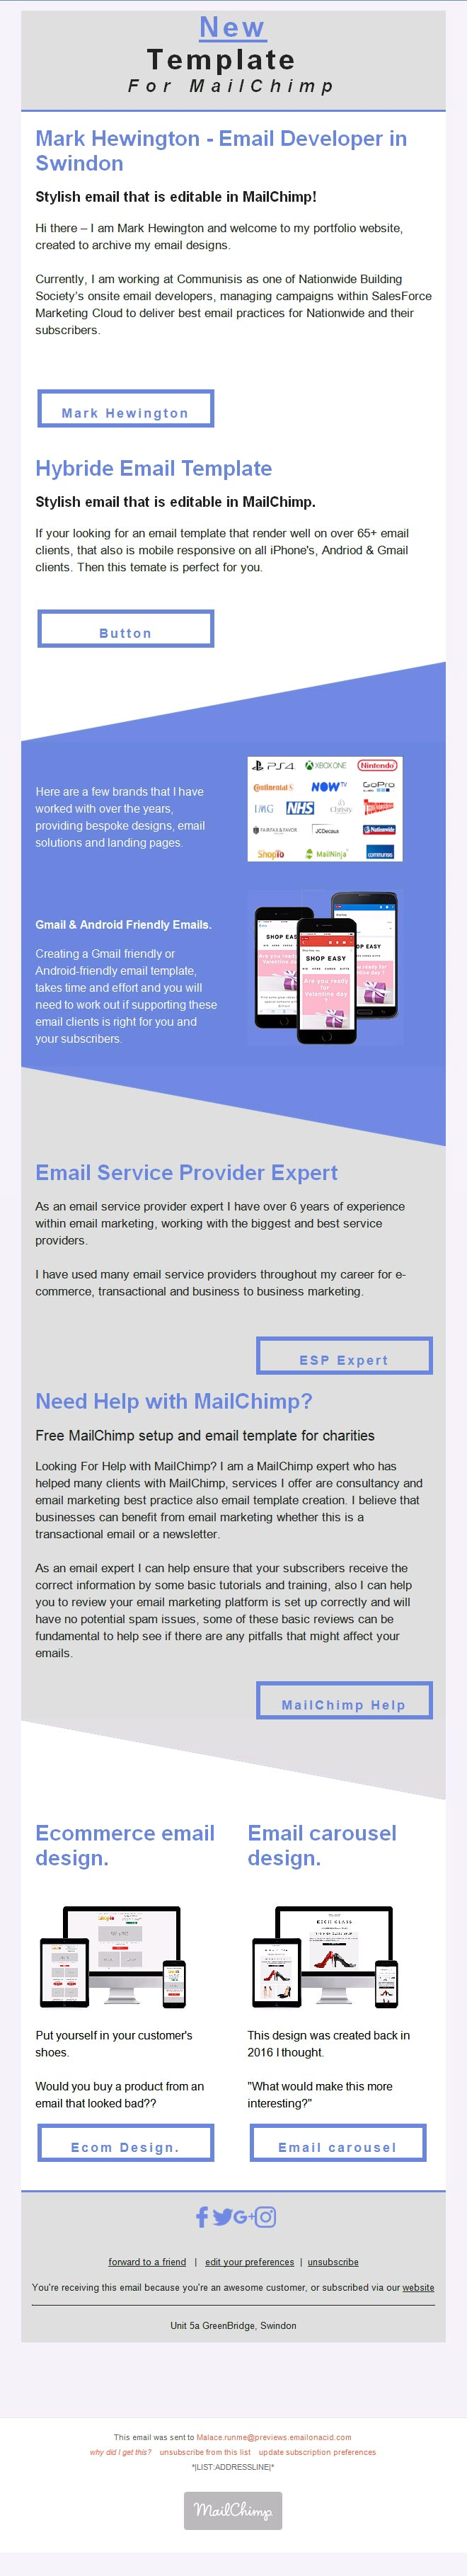 Editable MailChimp Email Template designs for Outlook